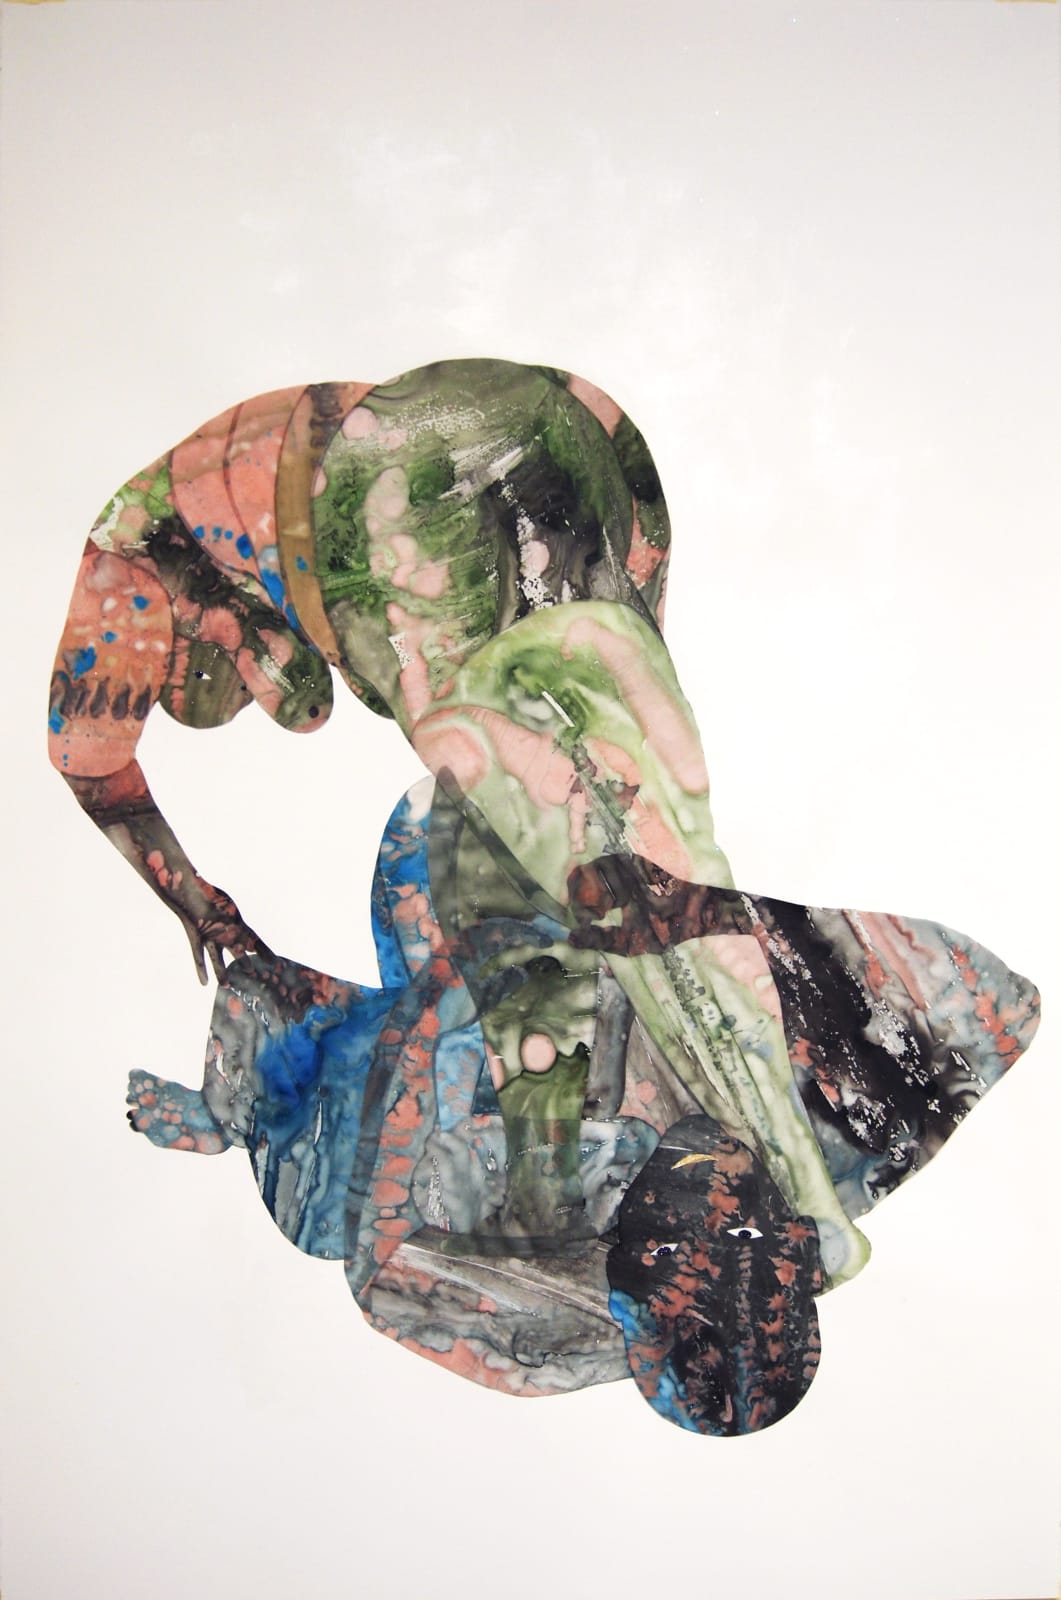 Florine Demosthene, Between Possibility & Actuality, 2019